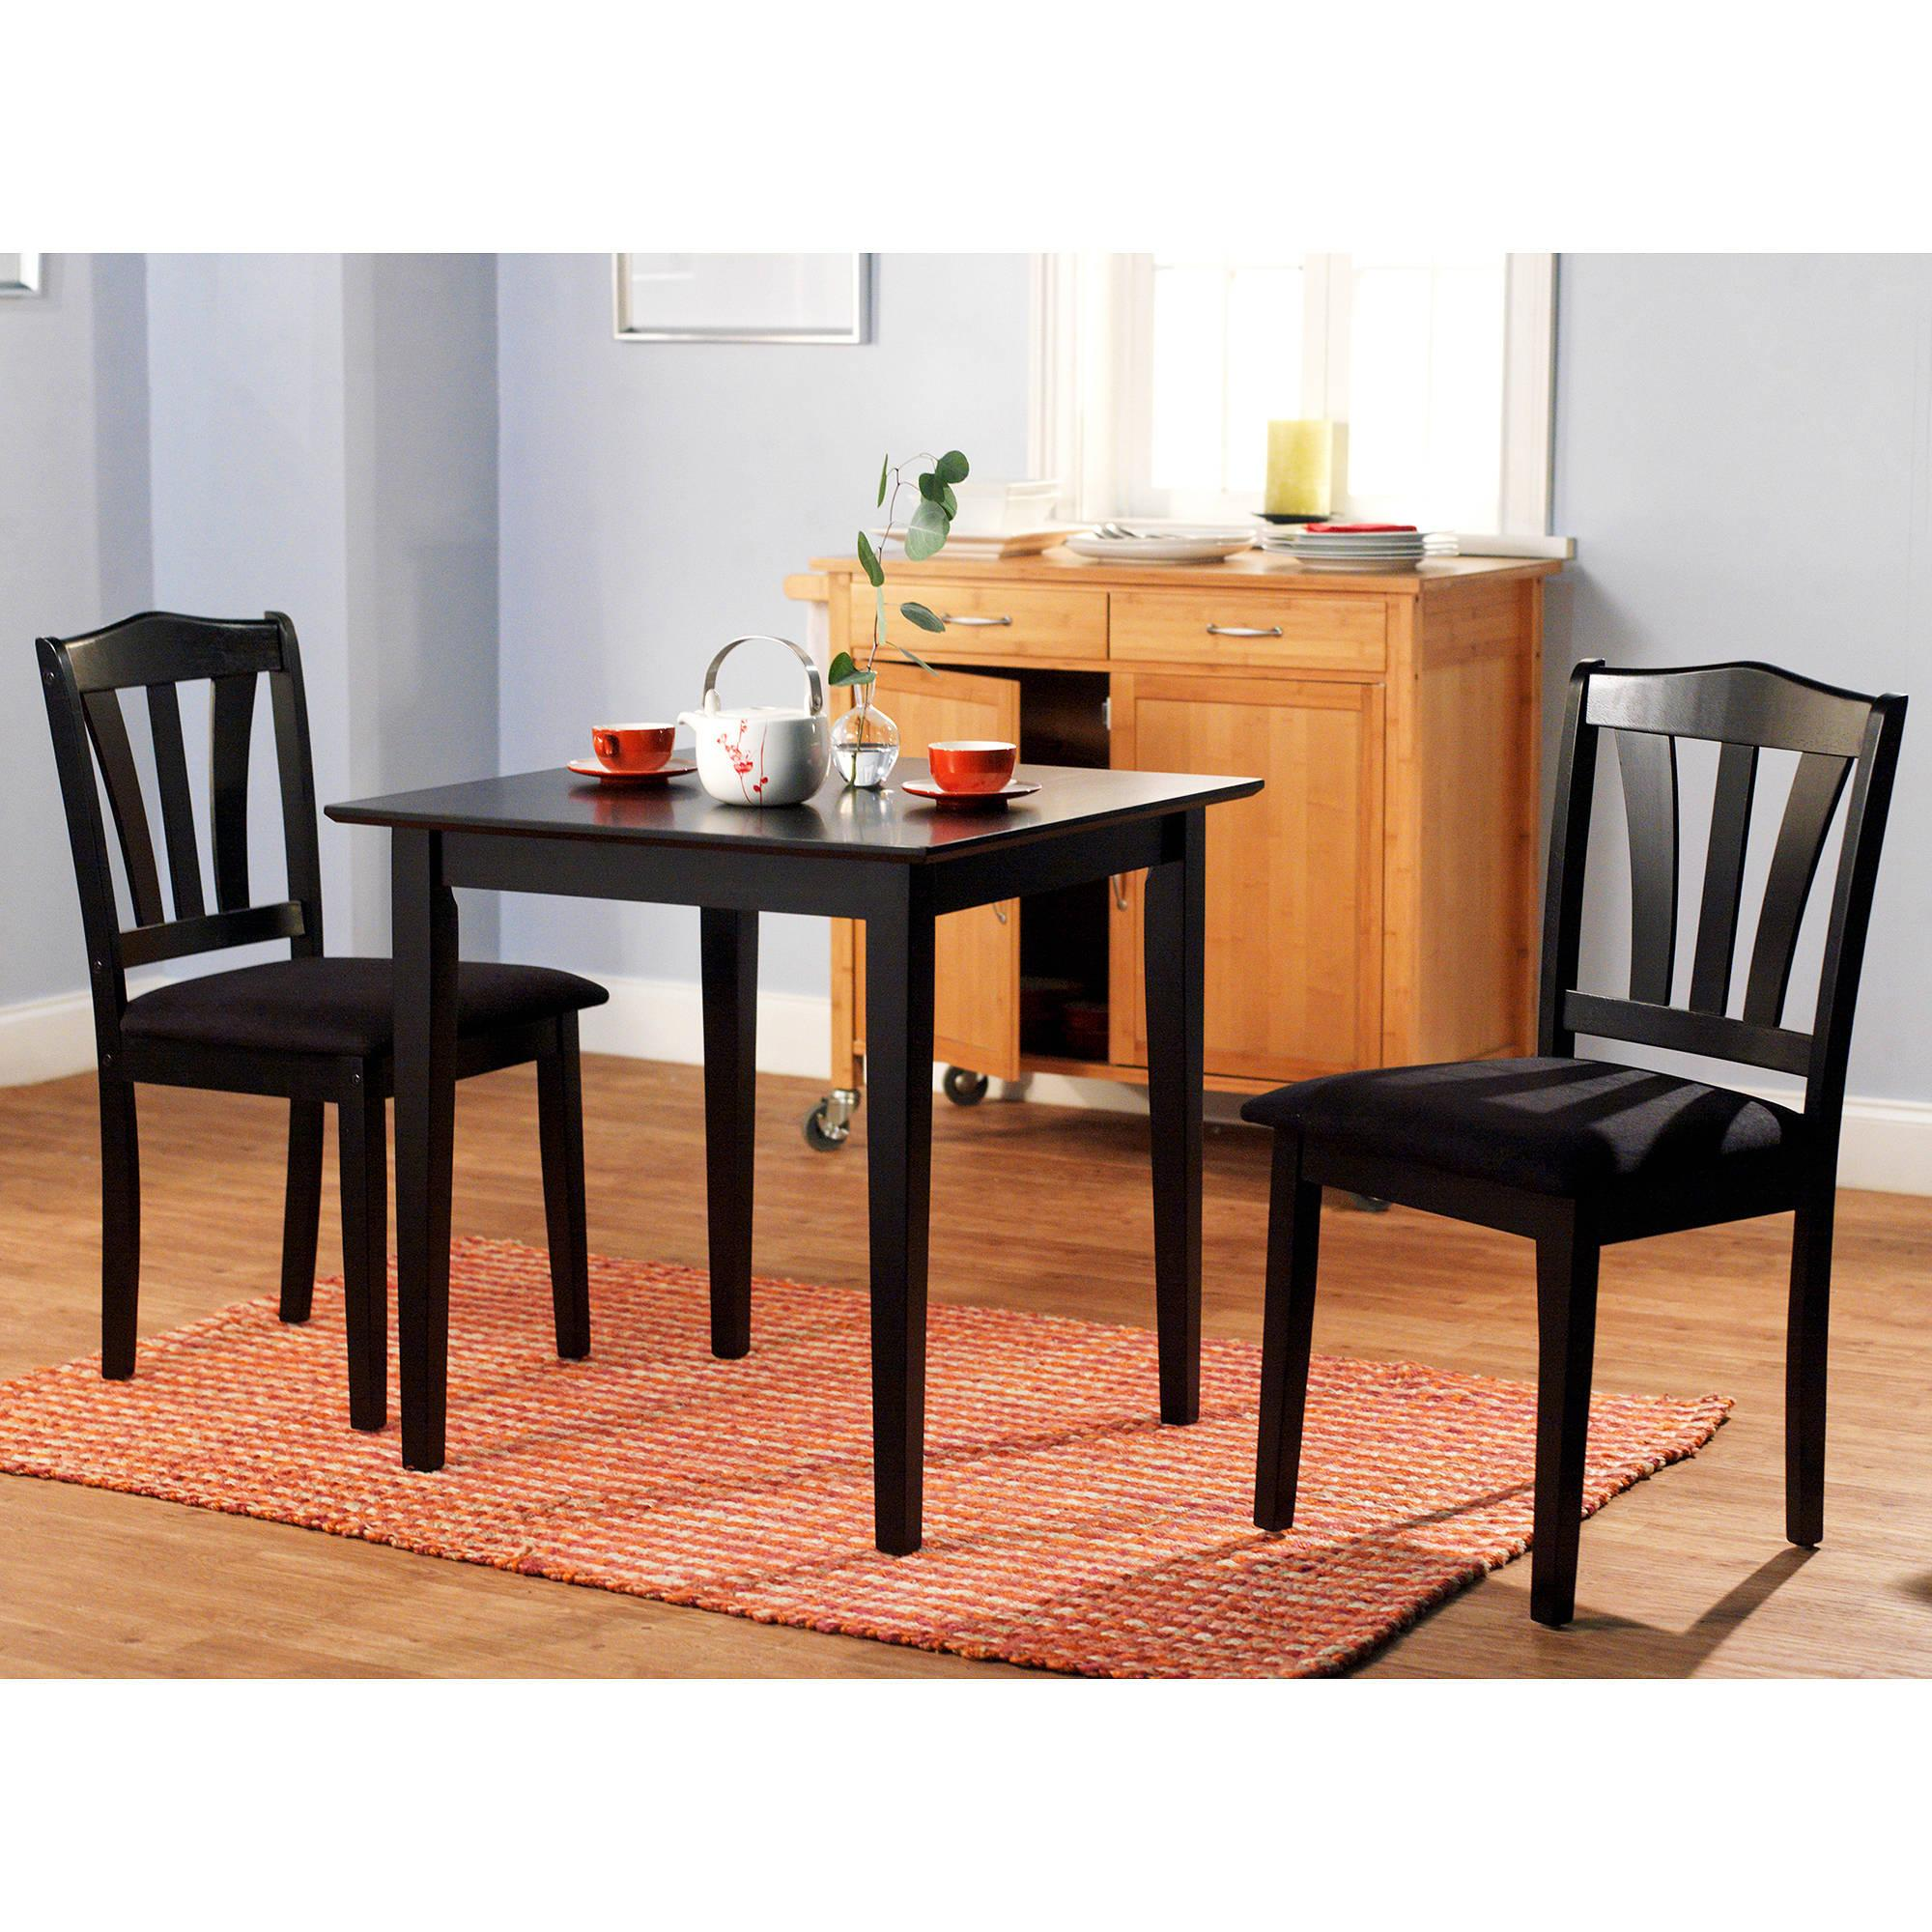 3 piece dining set table 2 chairs kitchen room wood for 3 piece dining room table